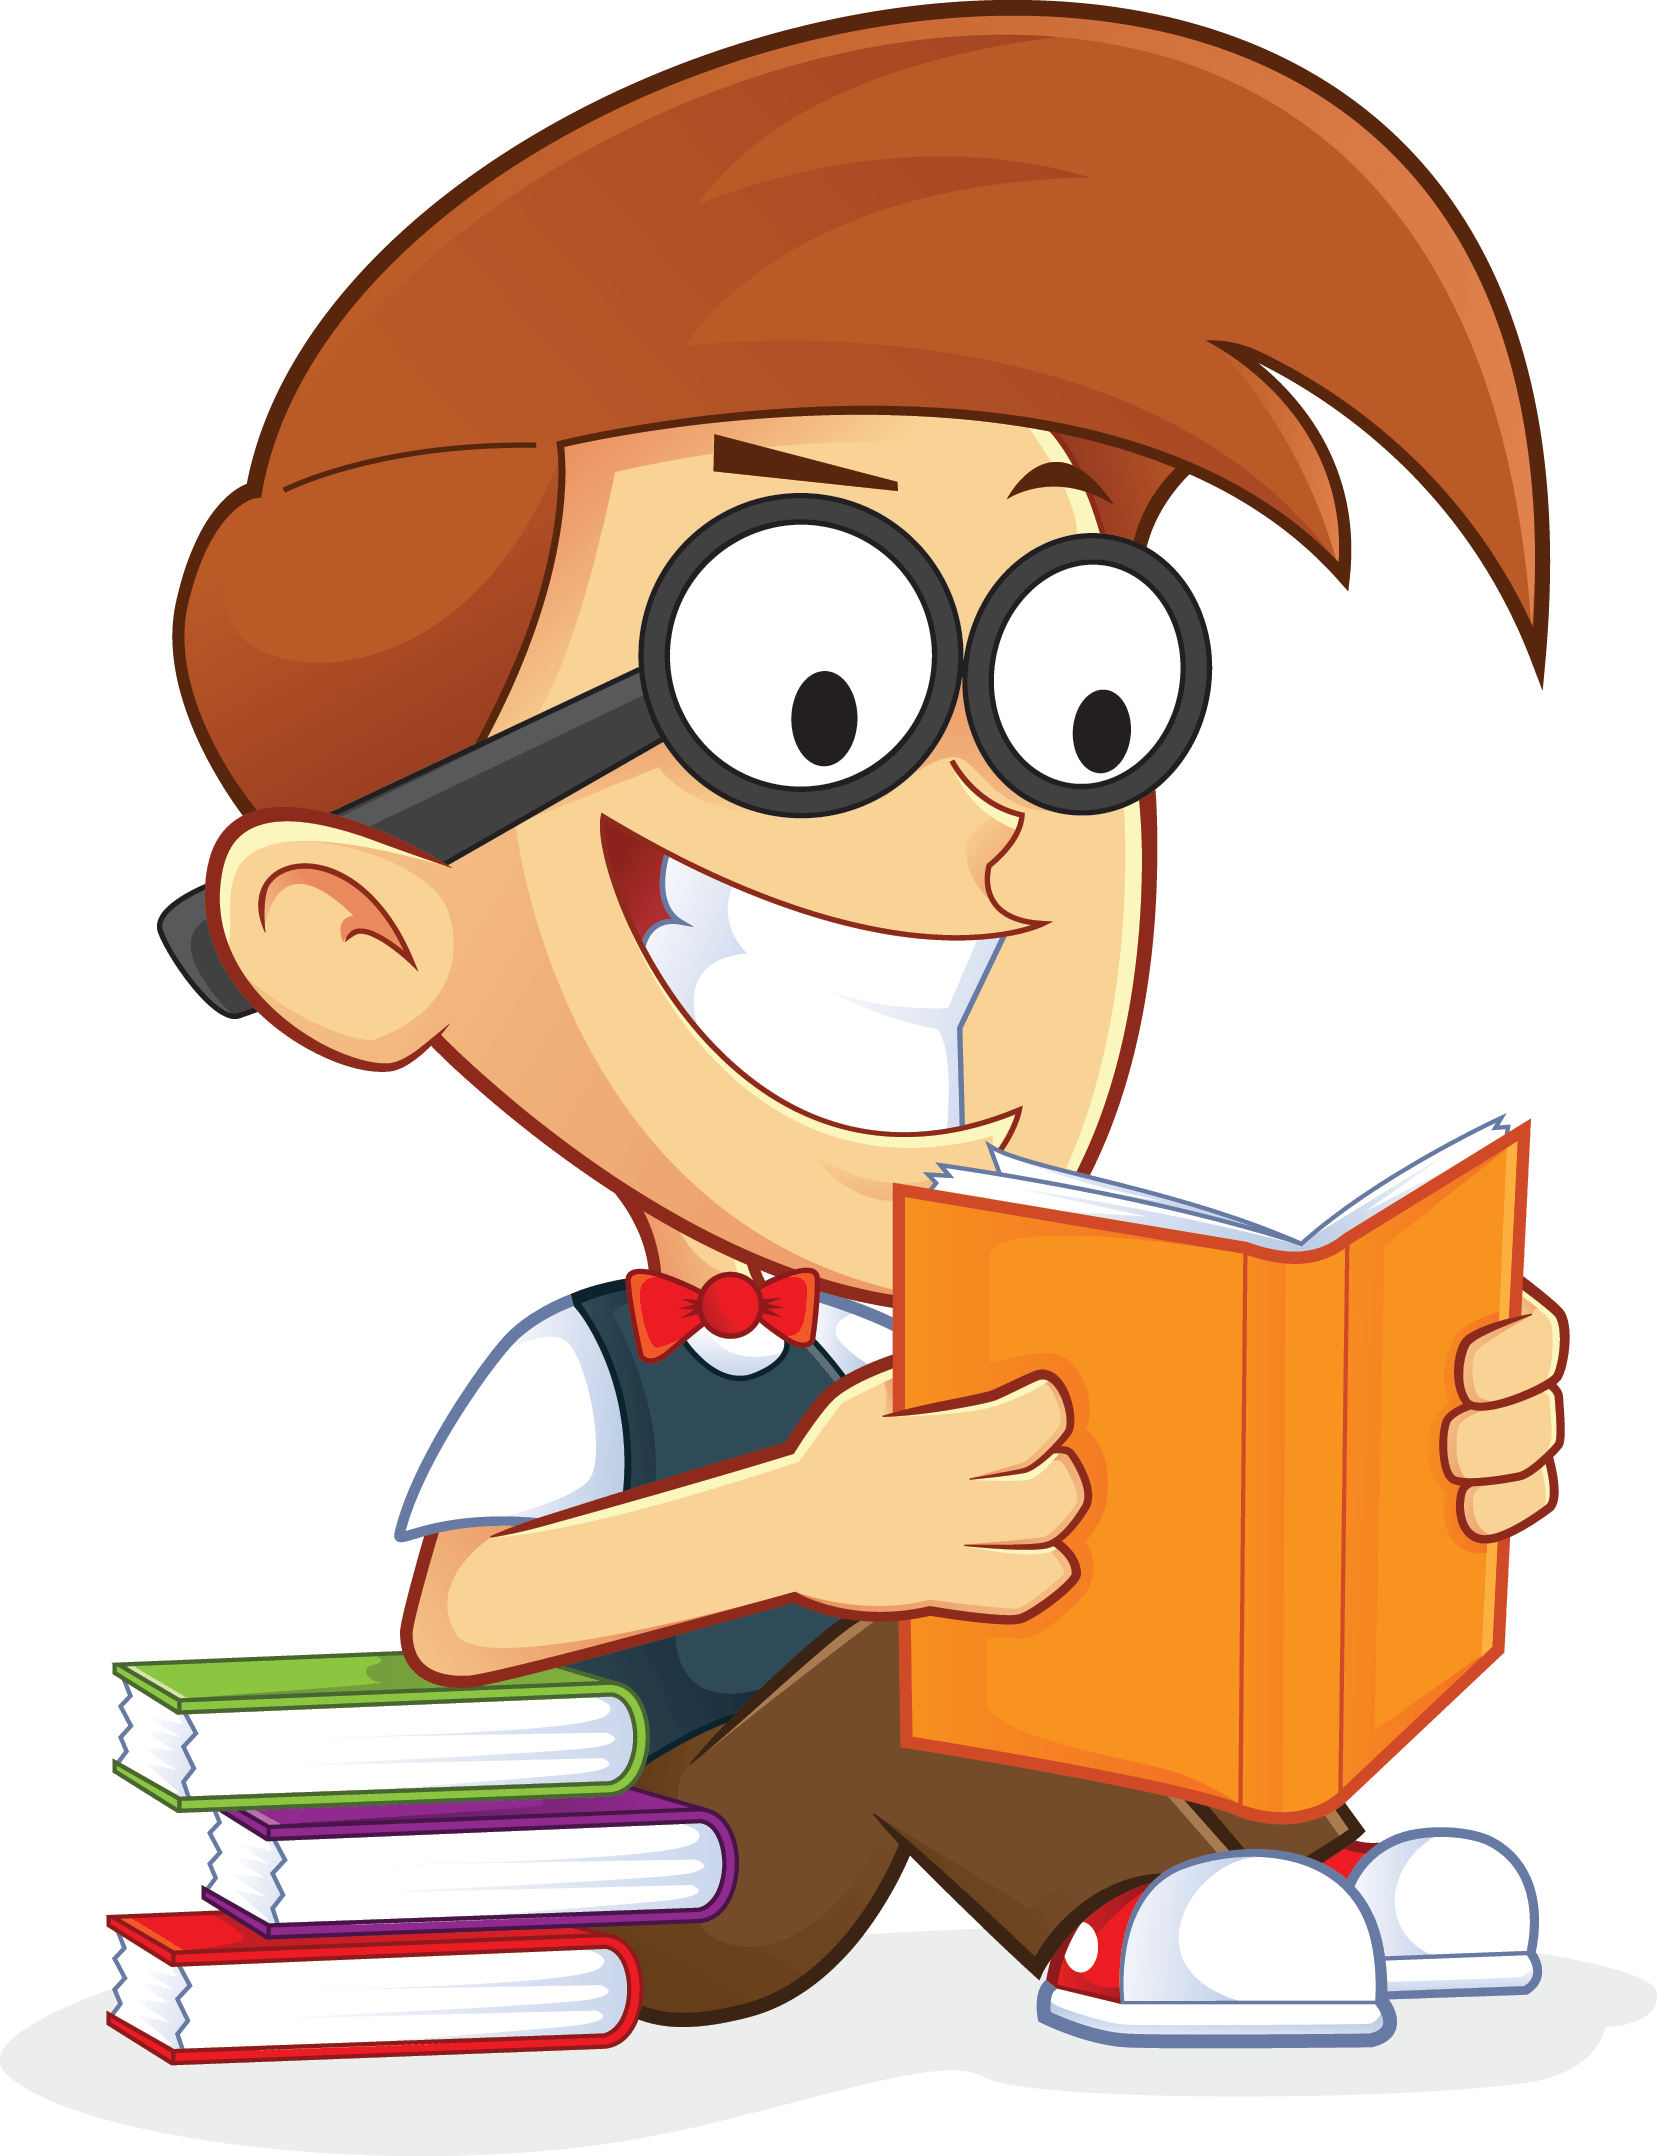 Free animated reading clipart. Nerd geek book people